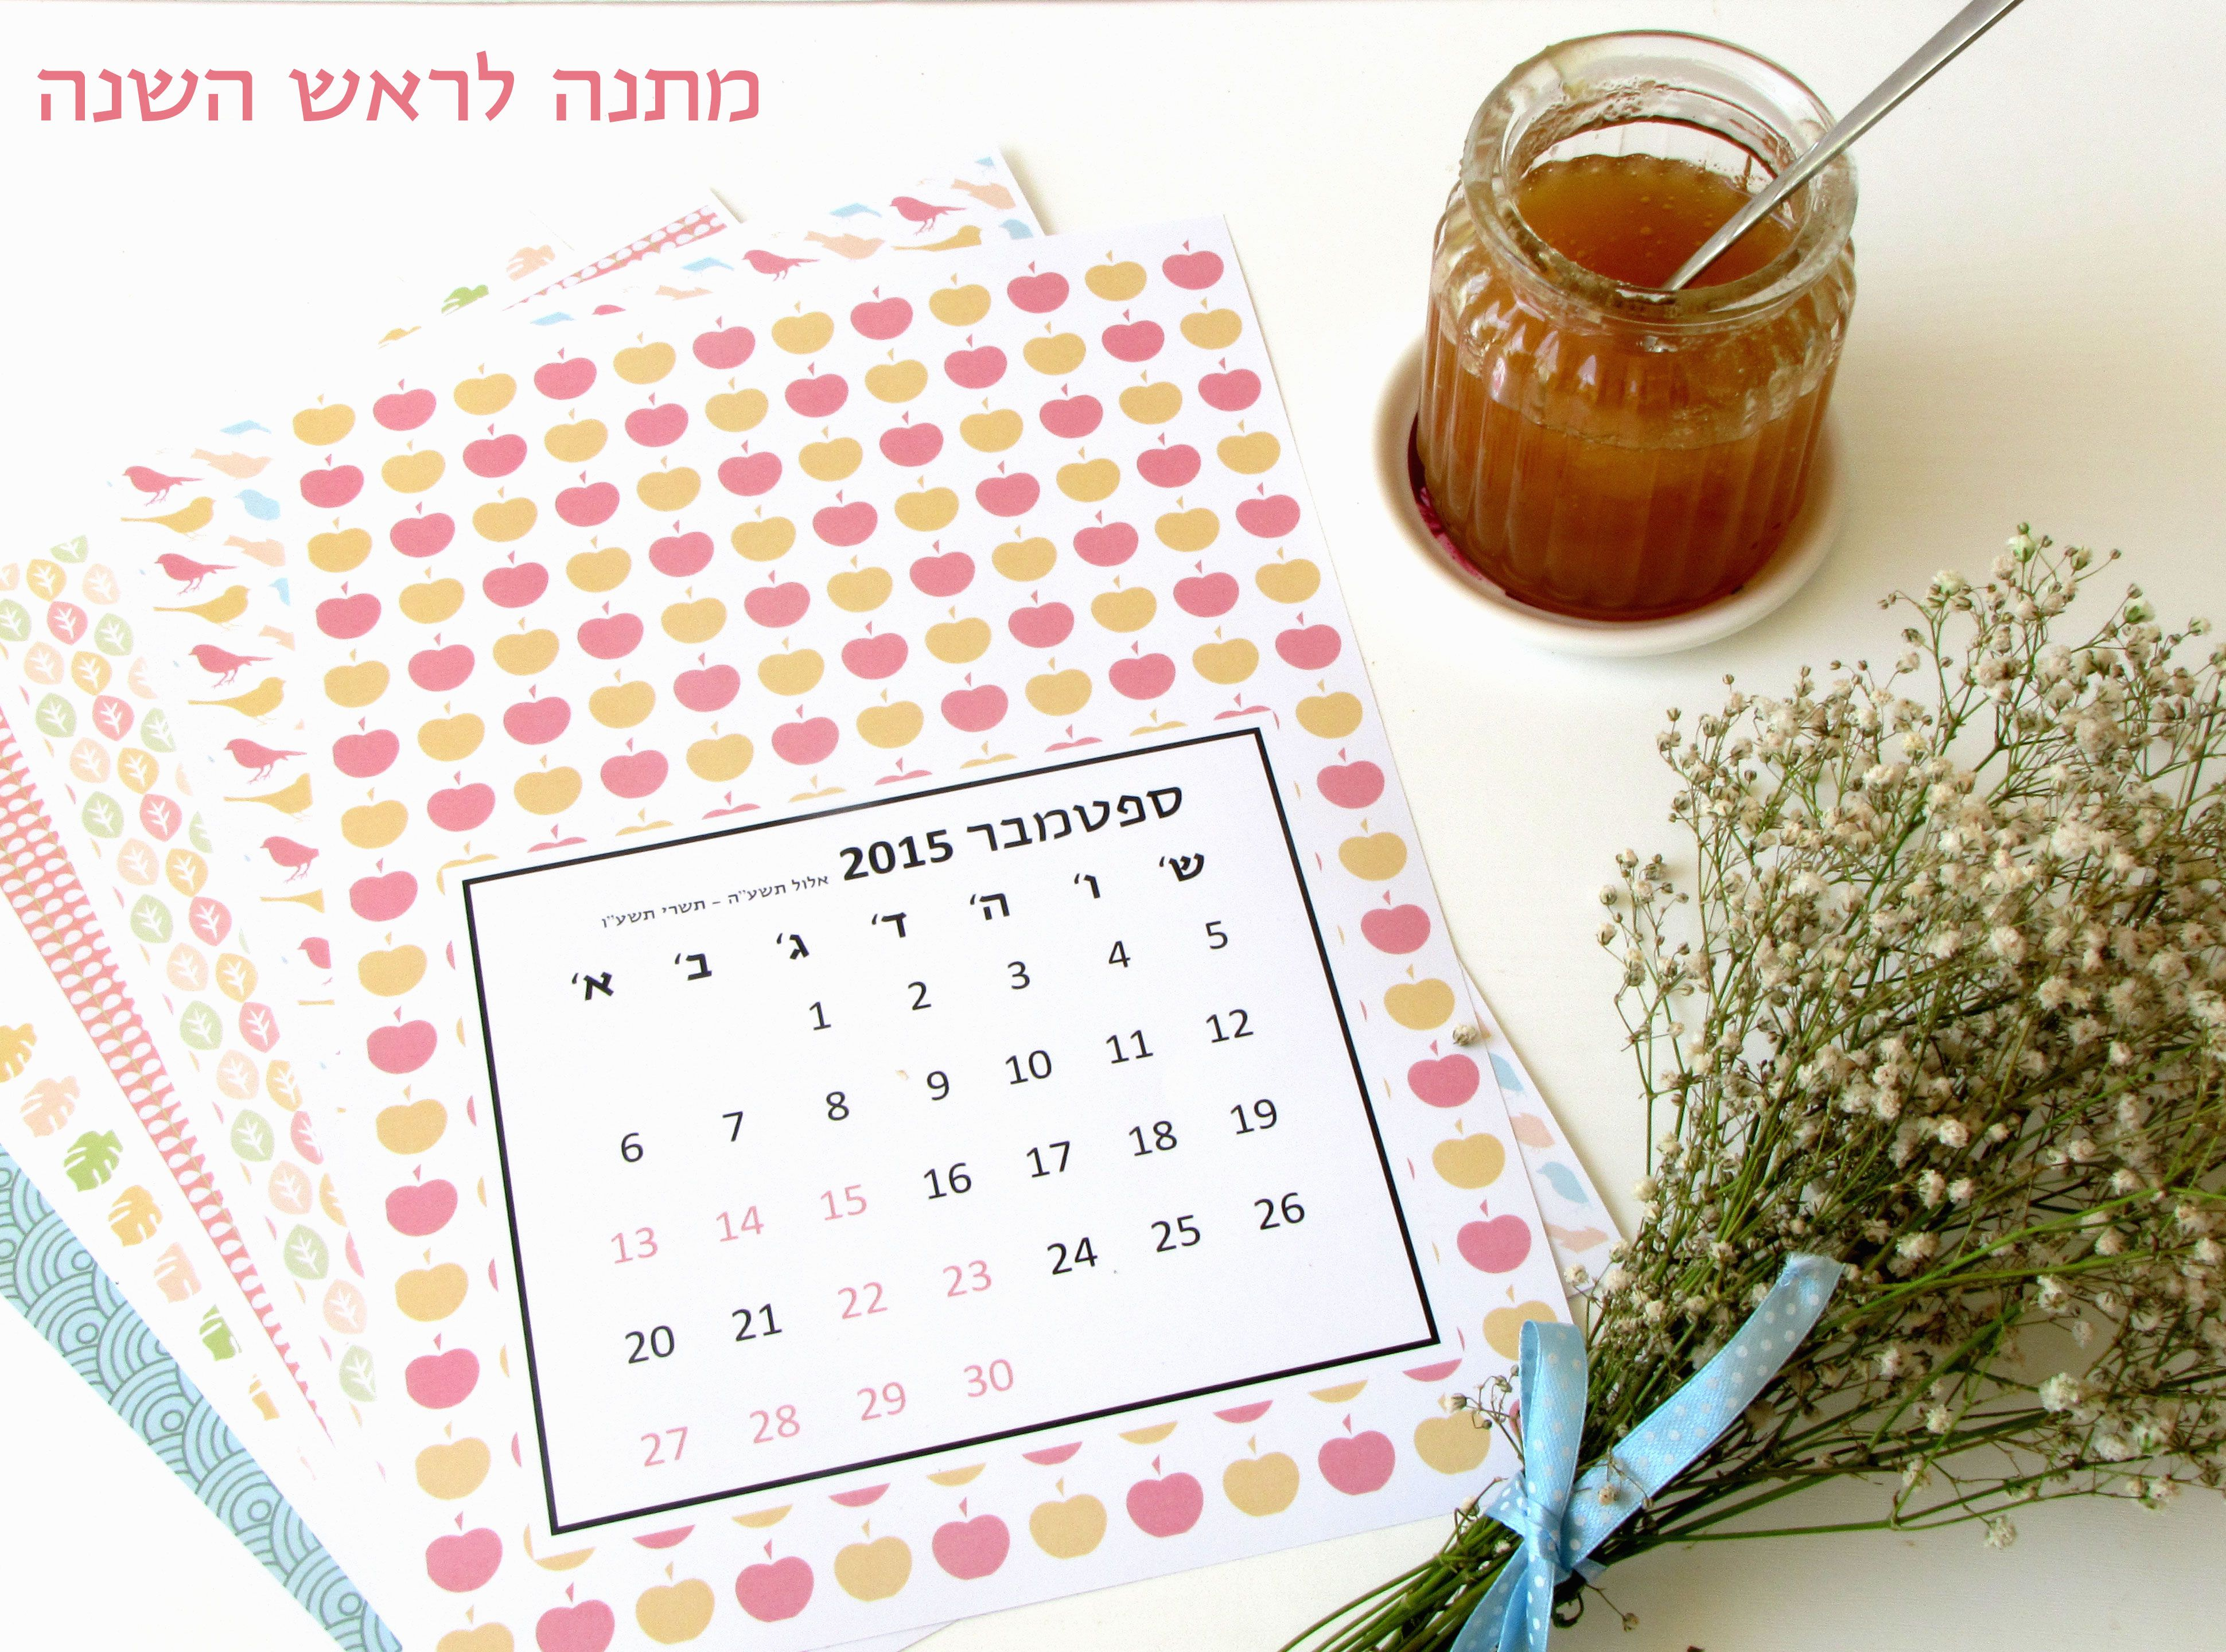 Free Printable Hebrew Calendar For The Jewish New Year Rosh Ha Sahana From Prettymplefe